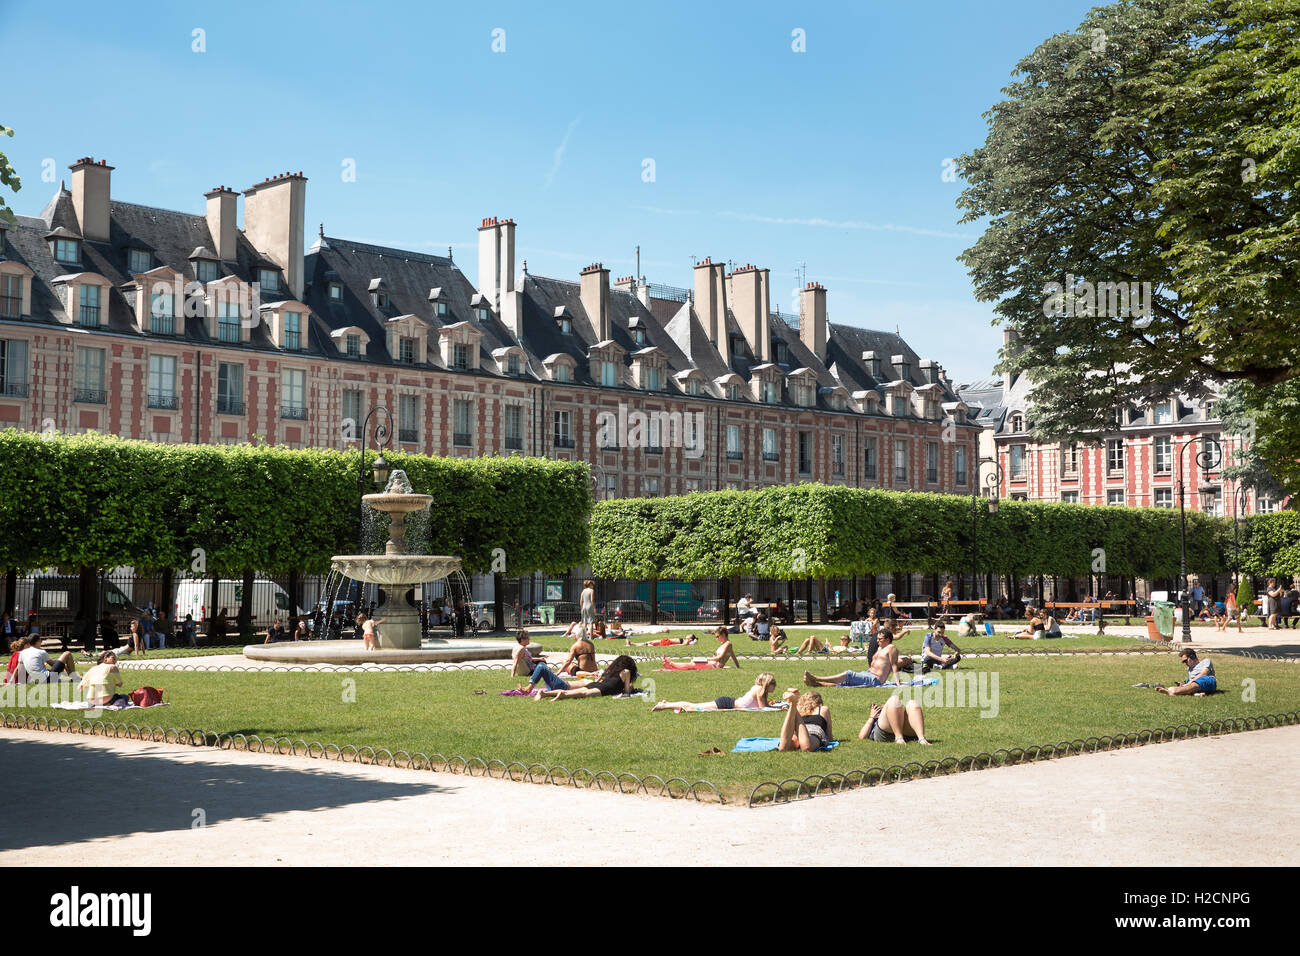 Place des Vosges in the Marais district of Paris, France - Stock Image